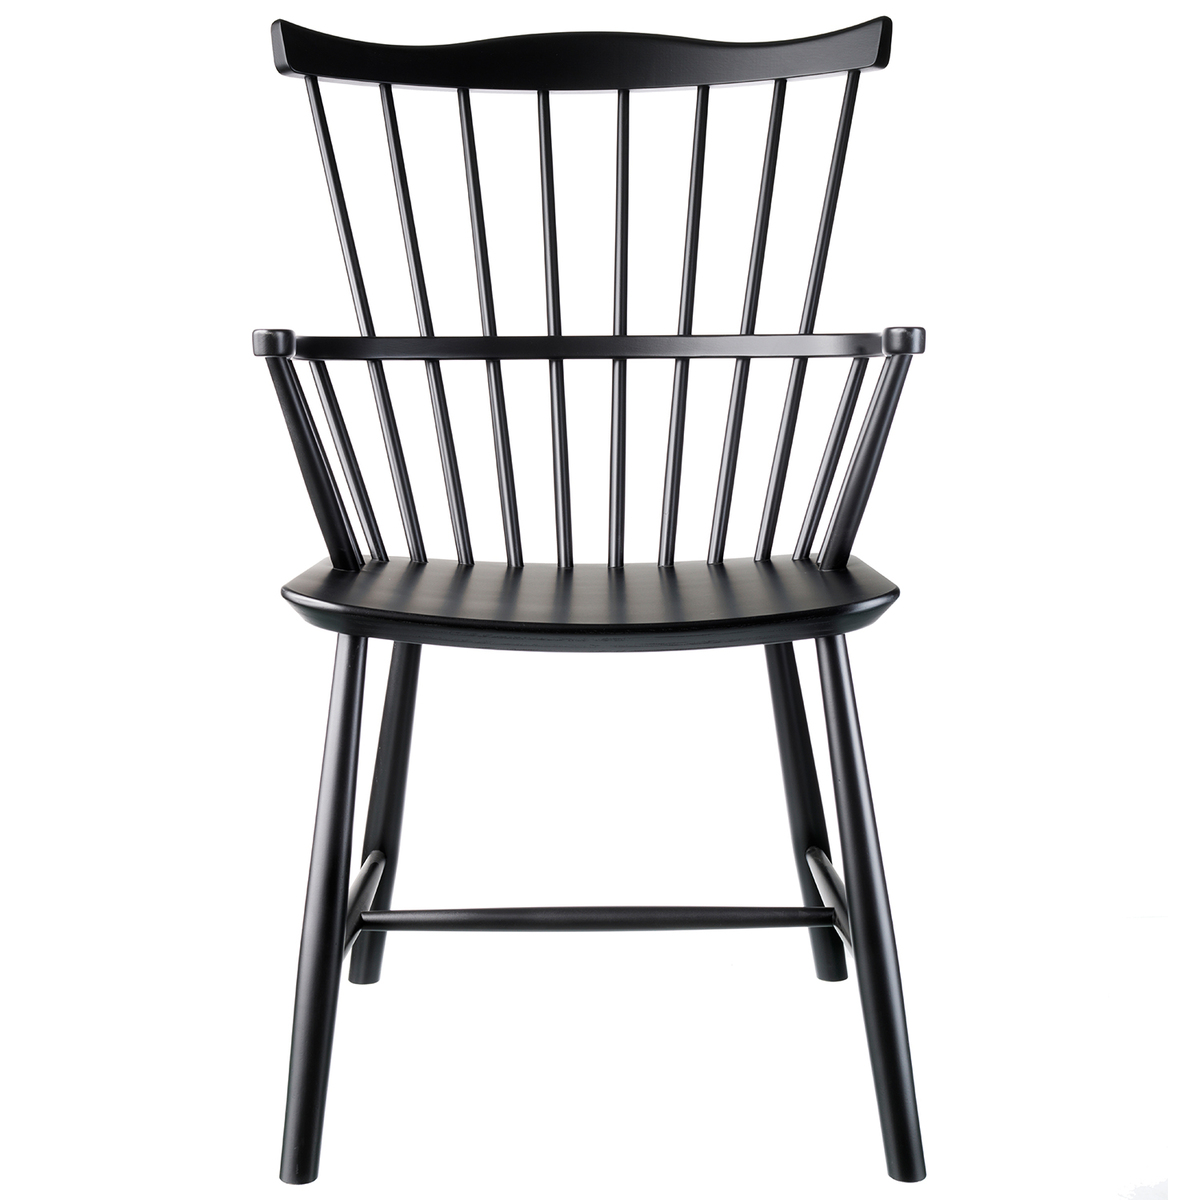 FDB Møbler J52B chair, black from FDB Møbler